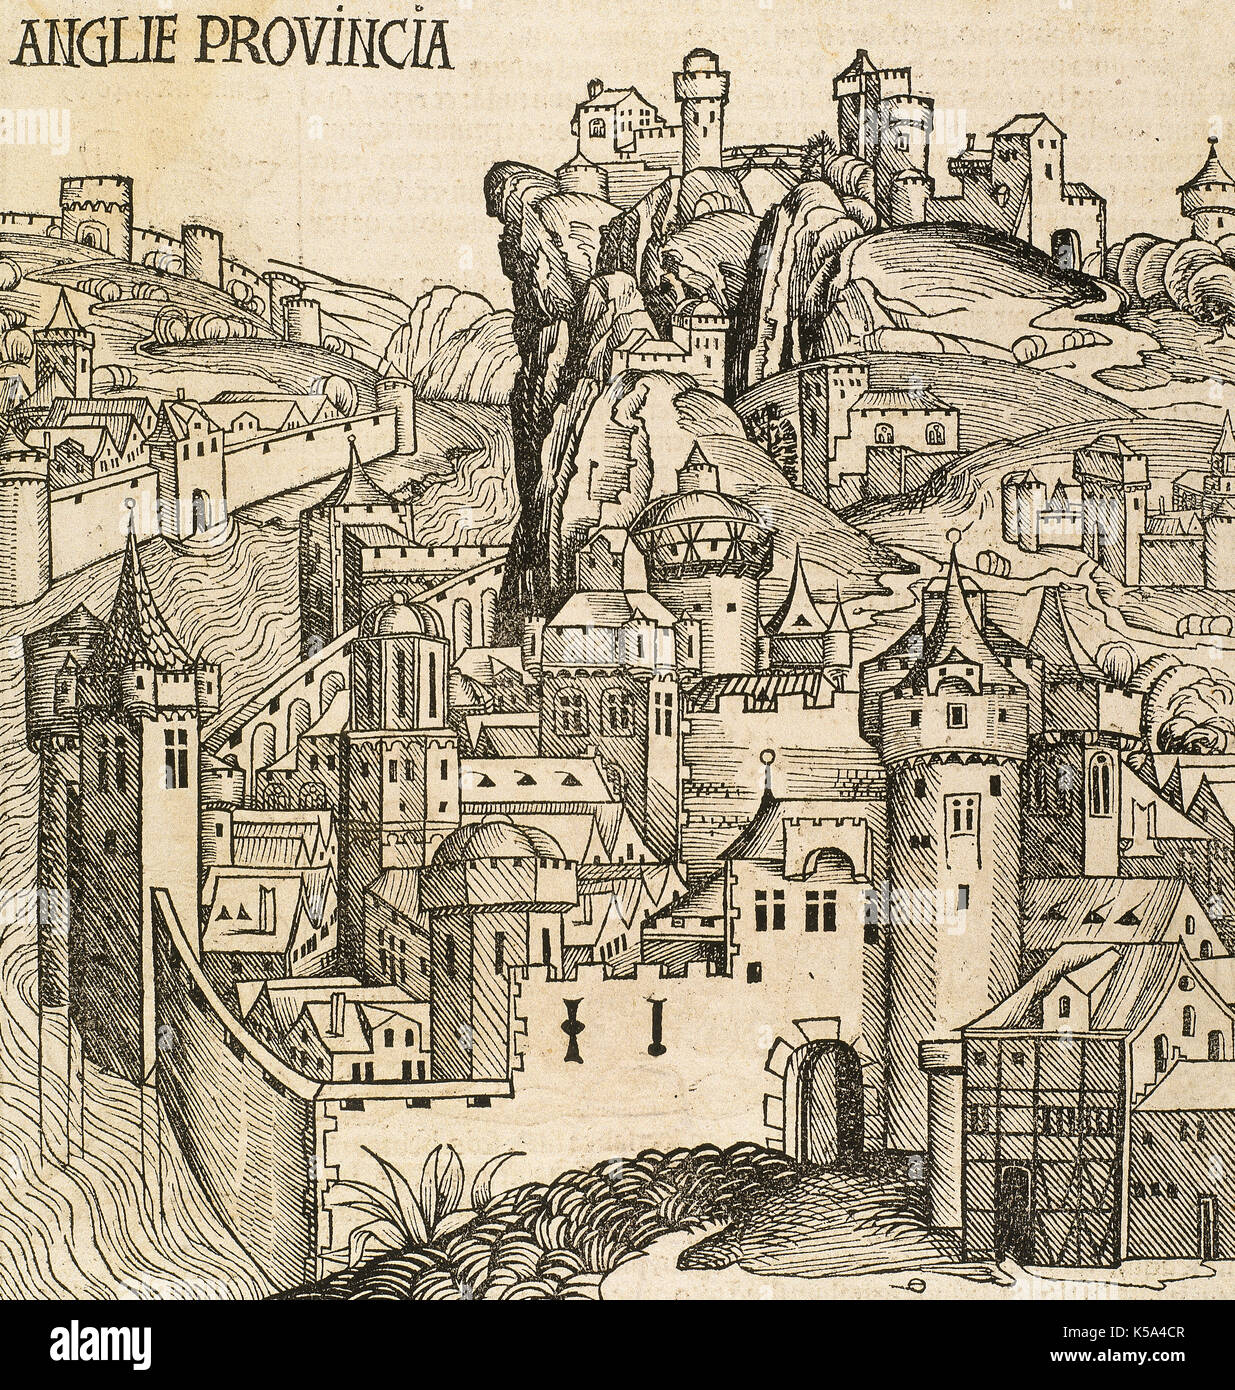 Old London. Walled medieval village. Anglie Provincia, Great Britain. Engraving. Liber Chronicarum by Hartmann Schedel, 1493. - Stock Image